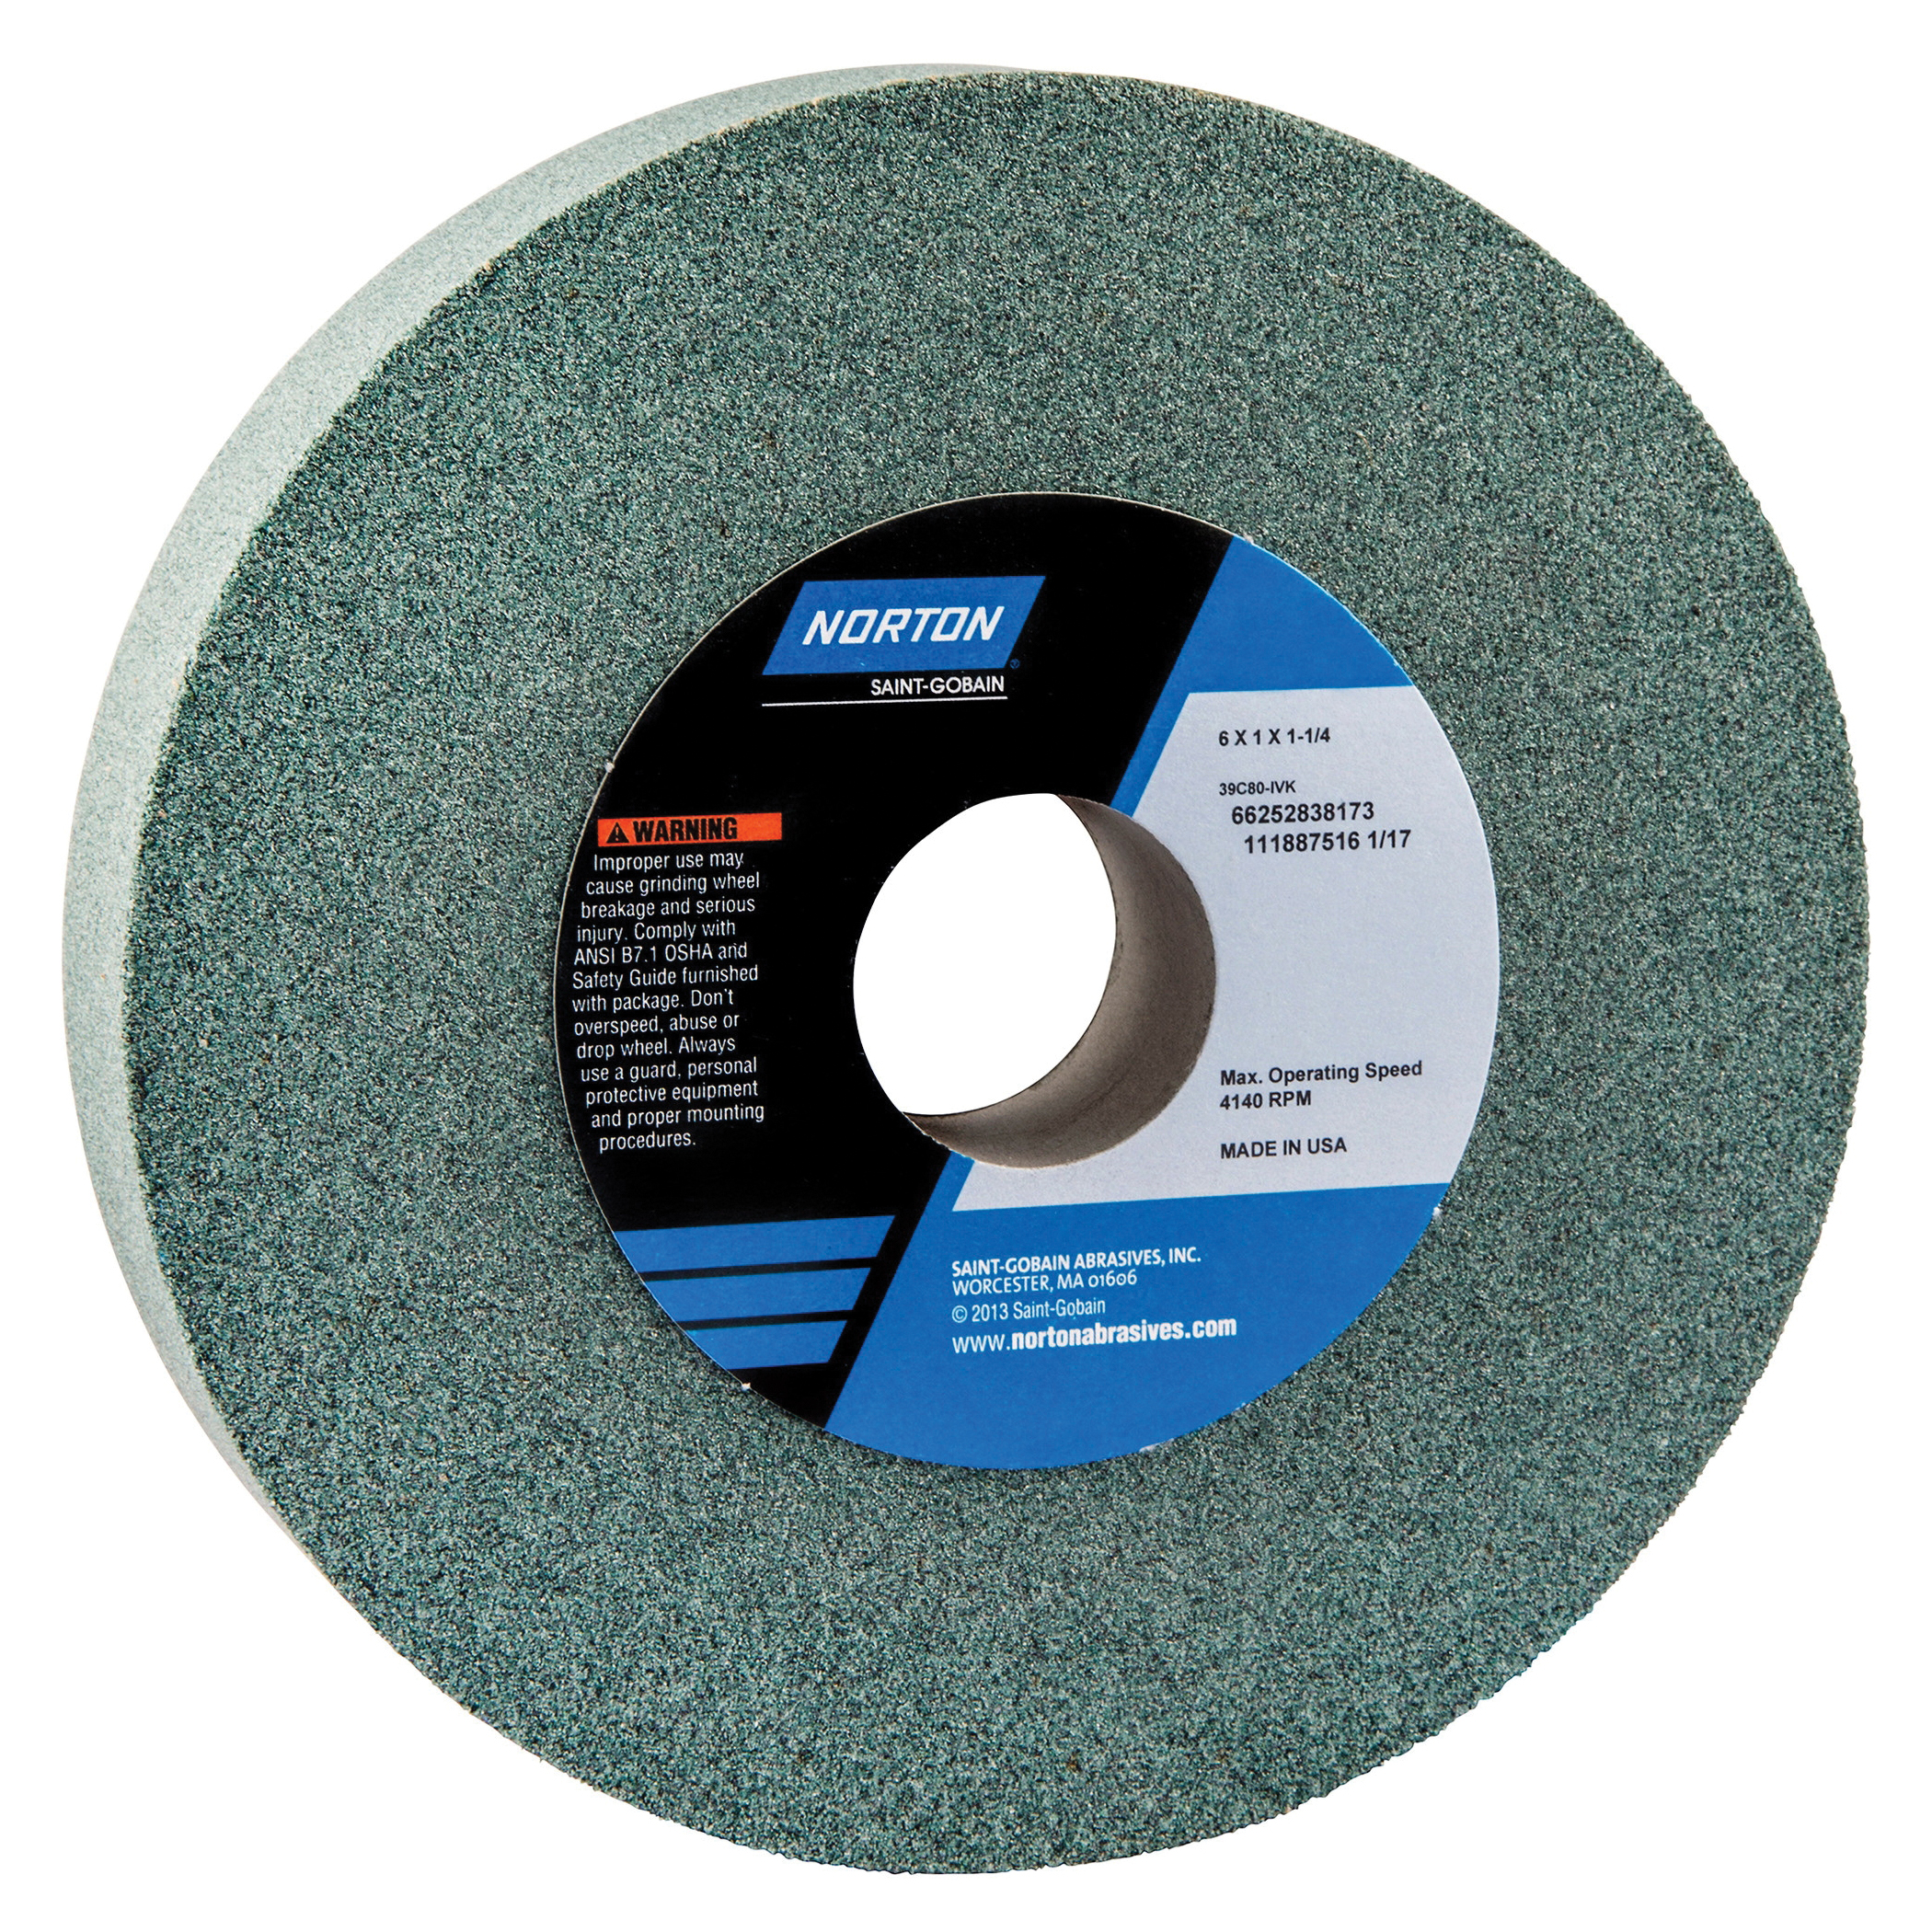 Norton® 66252838173 39C Straight Toolroom Wheel, 6 in Dia x 1 in THK, 1-1/4 in Center Hole, 80 Grit, Silicon Carbide Abrasive